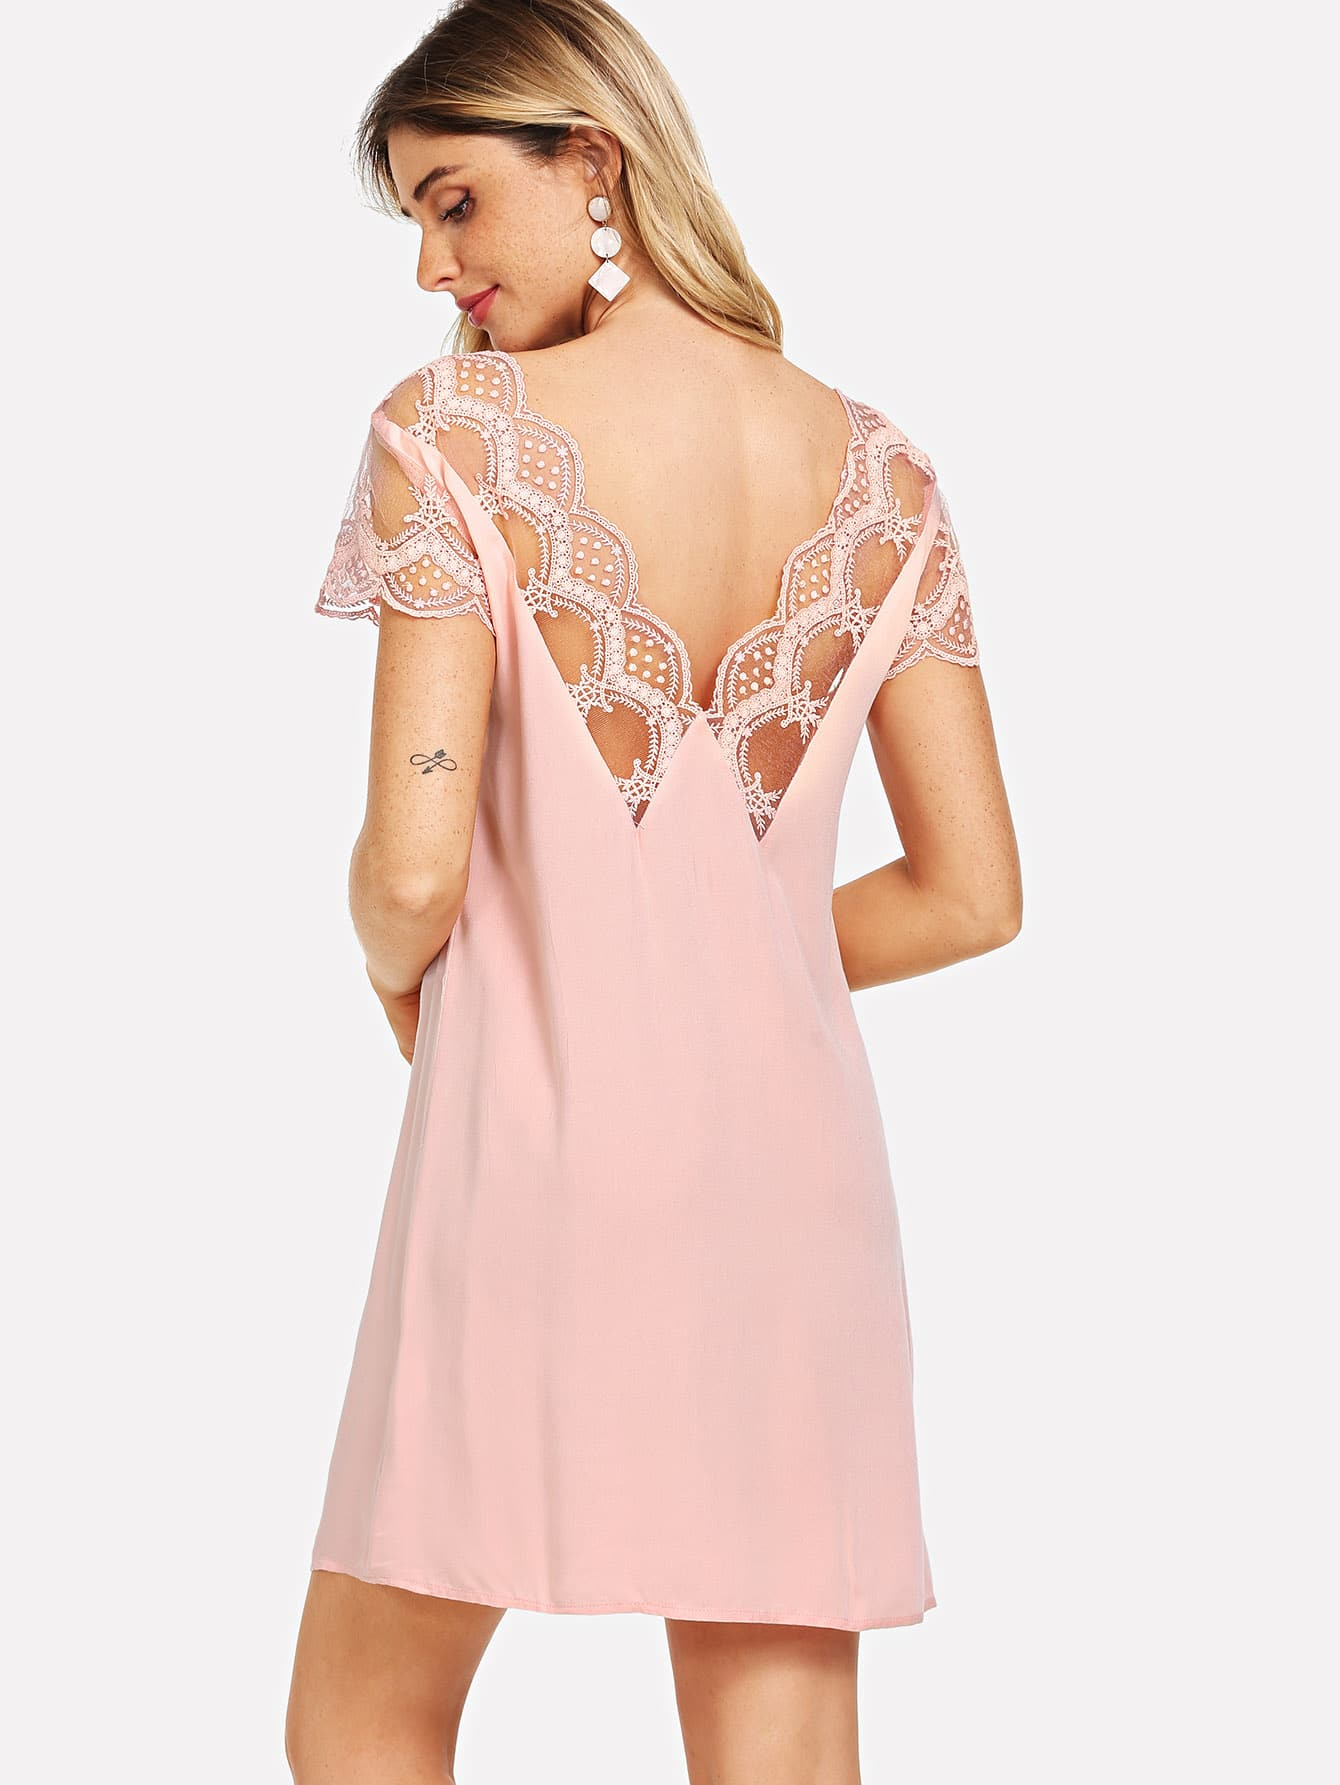 Sheer Embroidered Mesh Trim Solid Dress embroidered mesh sheer dress without lingerie dress